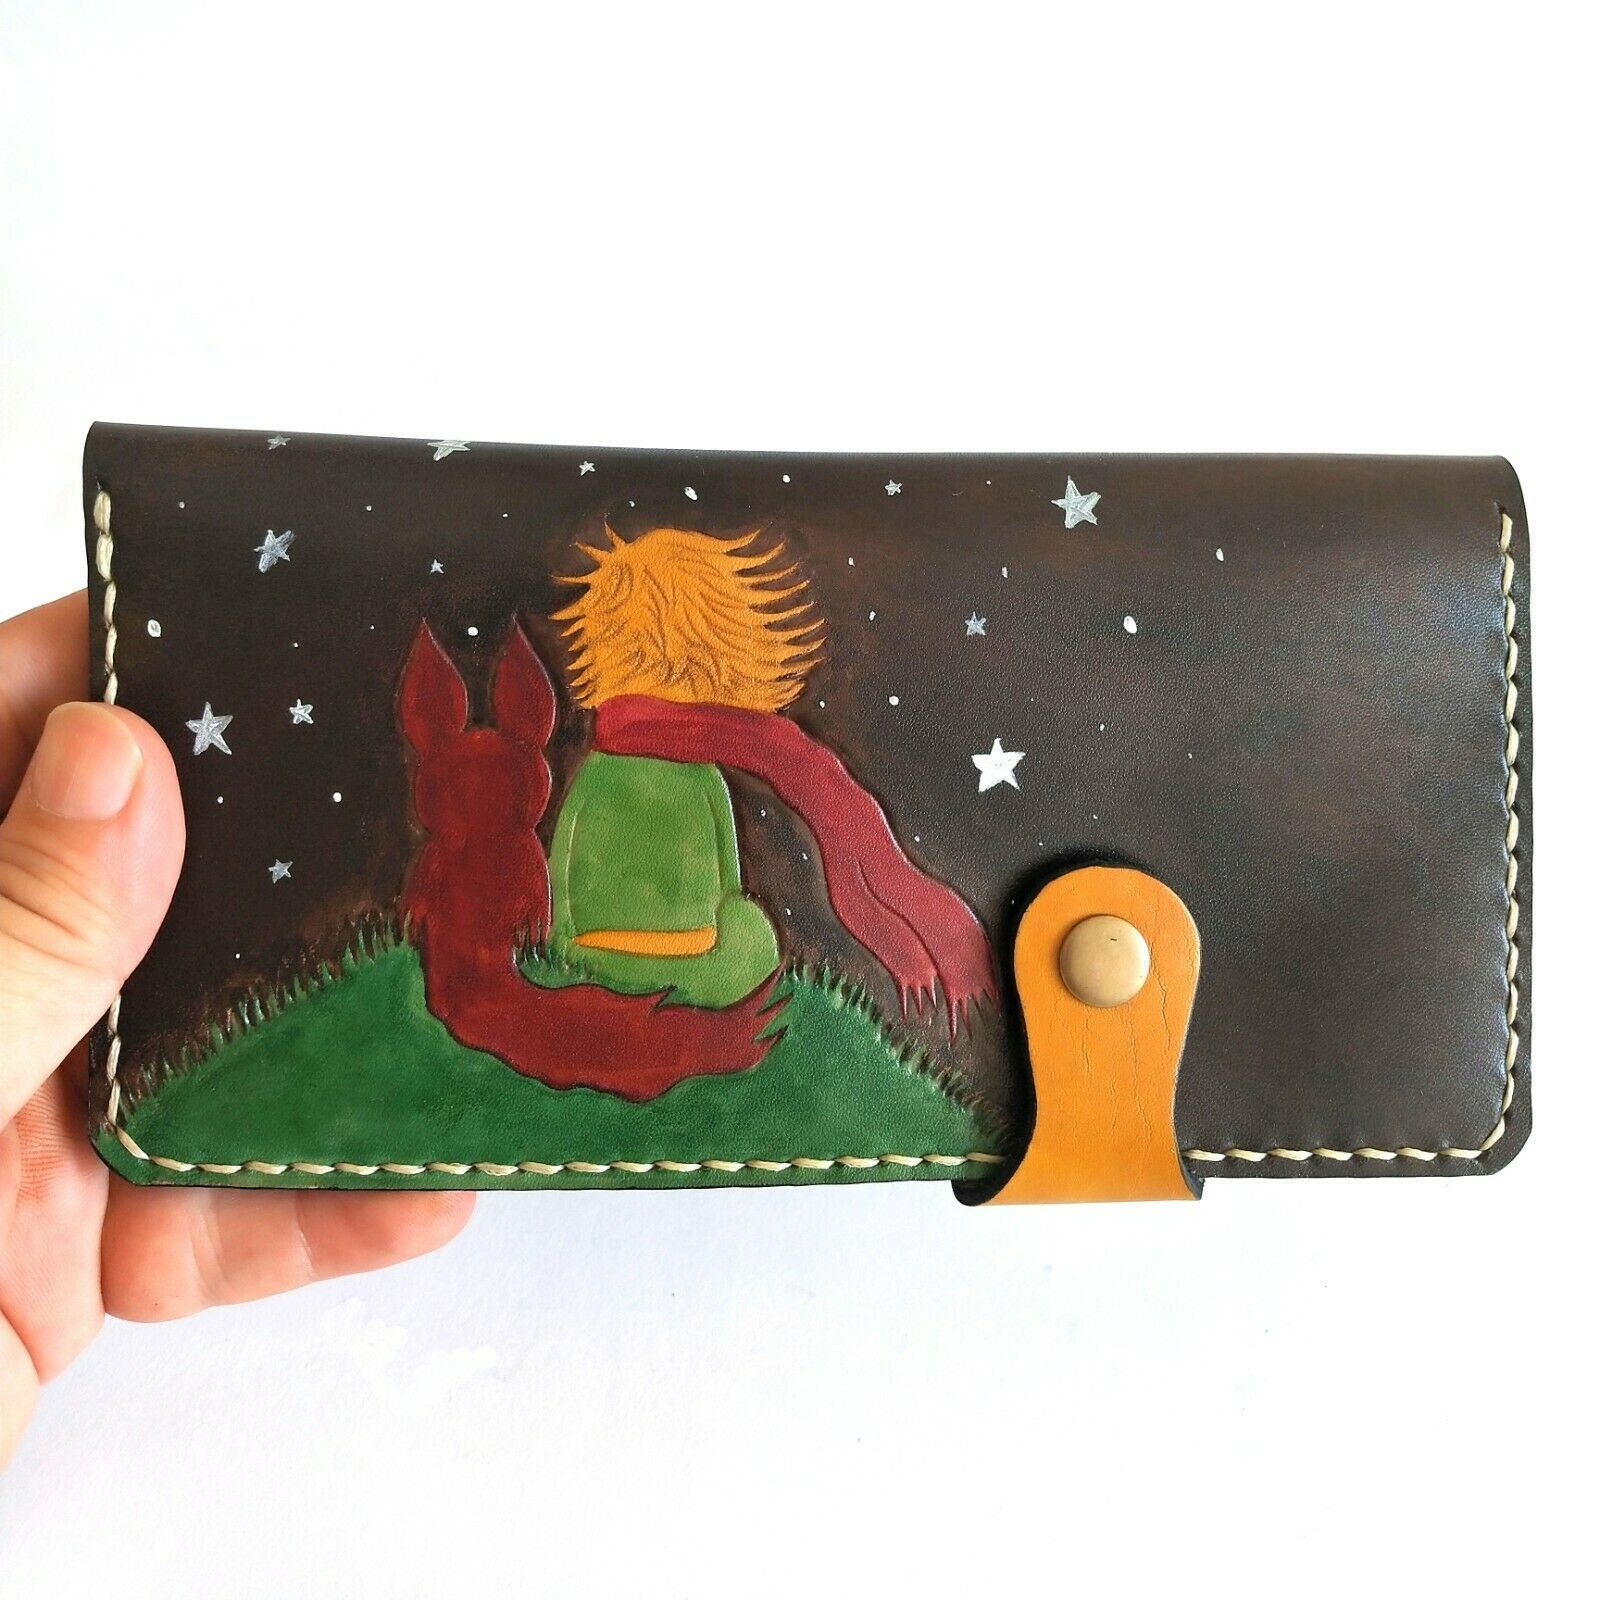 Little Prince and Fox Hand Painted Wallets, Handmade Leather Wallet, Unique Gift